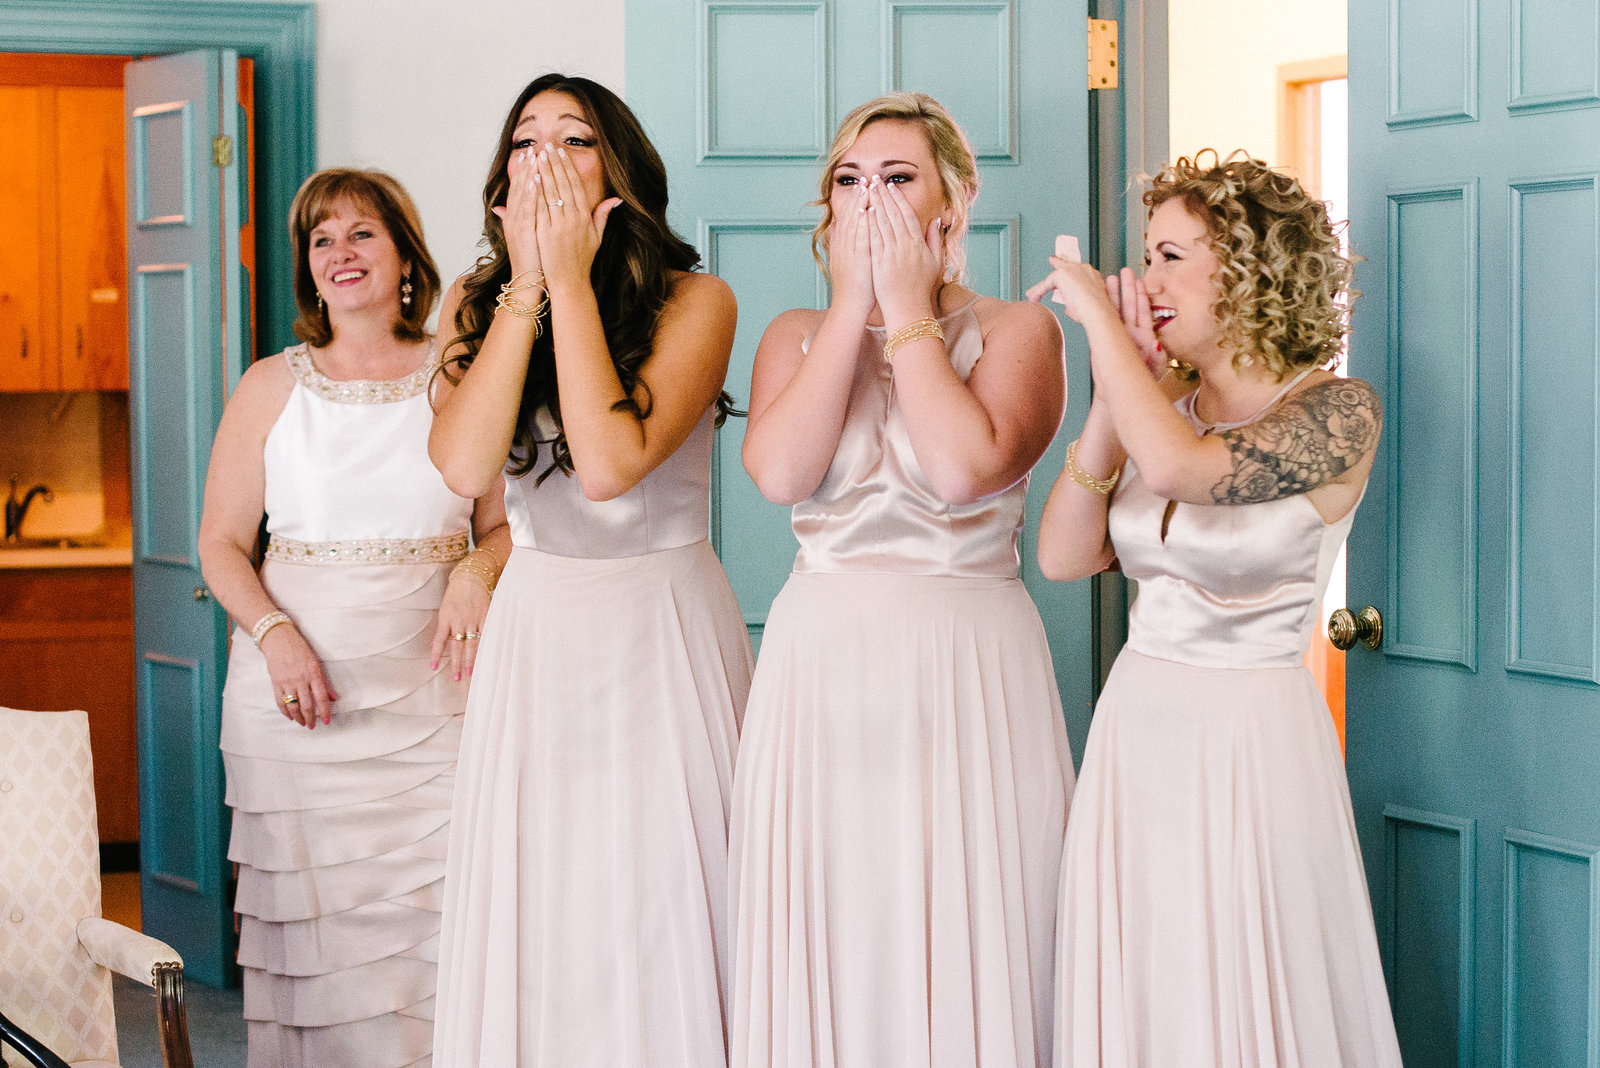 Youngstown OH bridesmaids react to seeing bride for first time